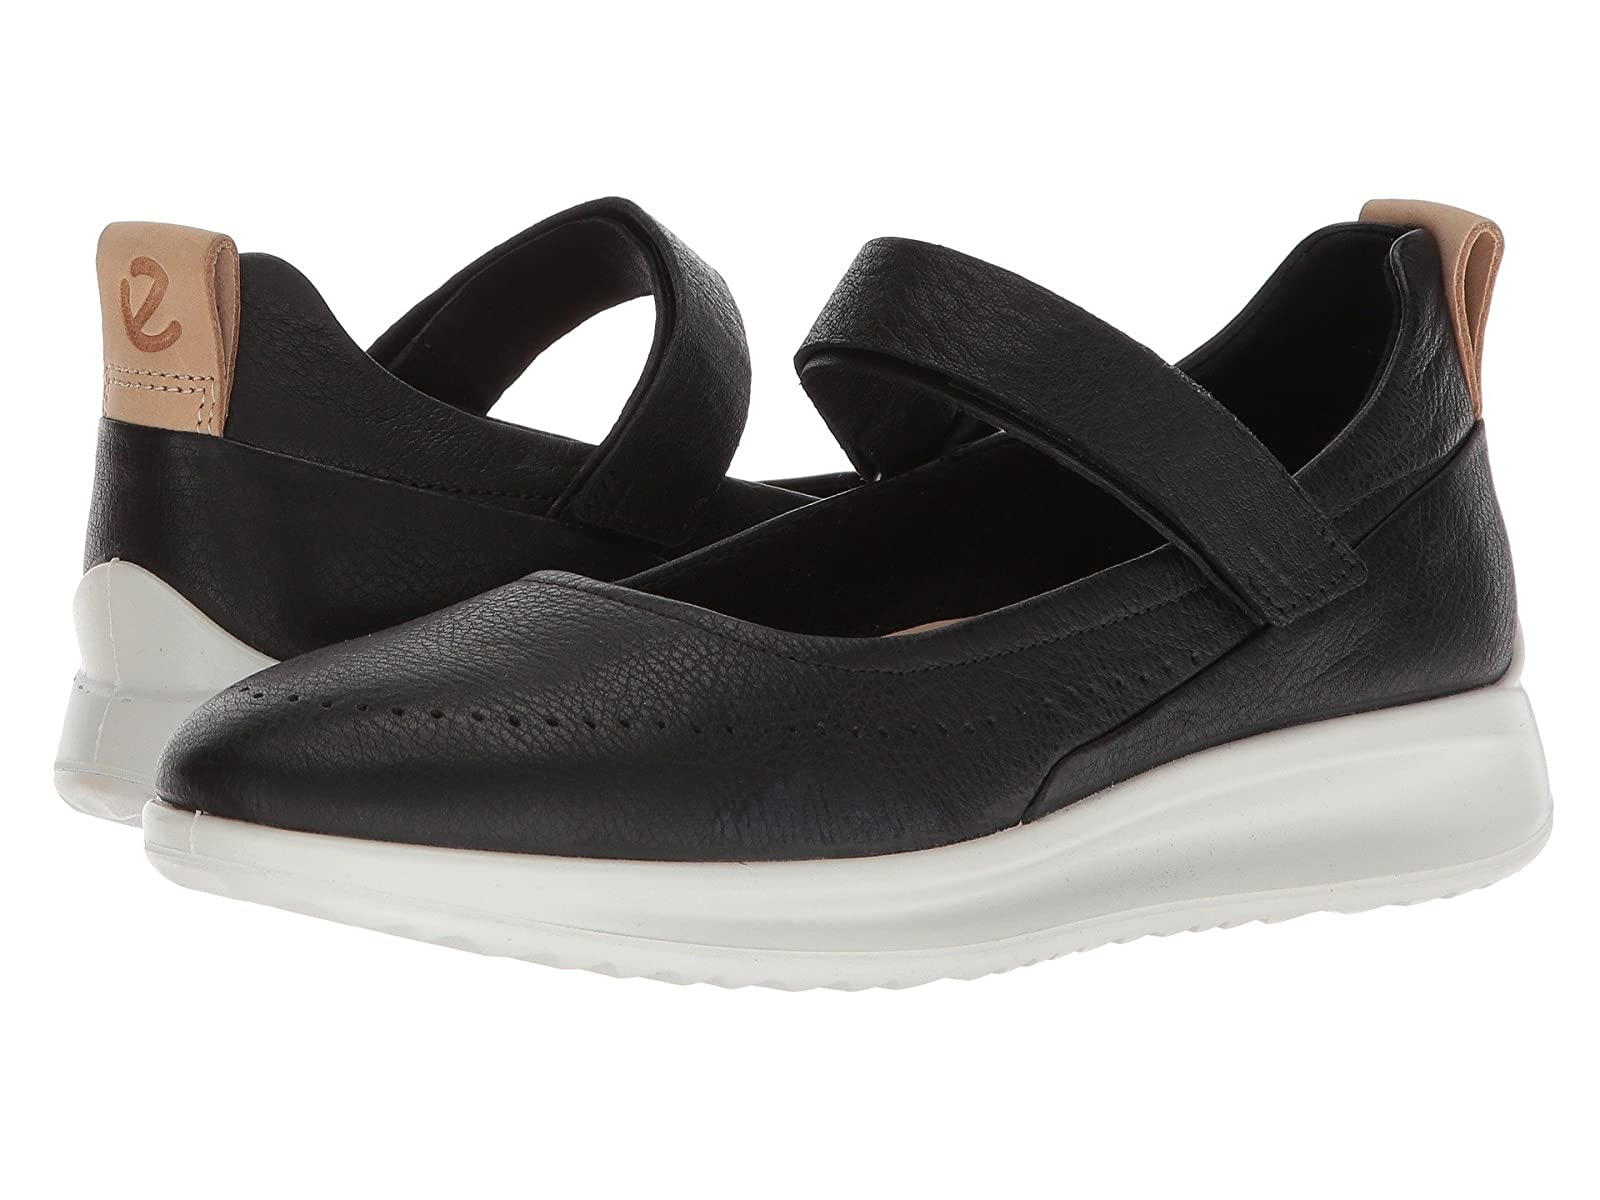 ECCO Aquet Perf Mary JaneAtmospheric grades have affordable shoes